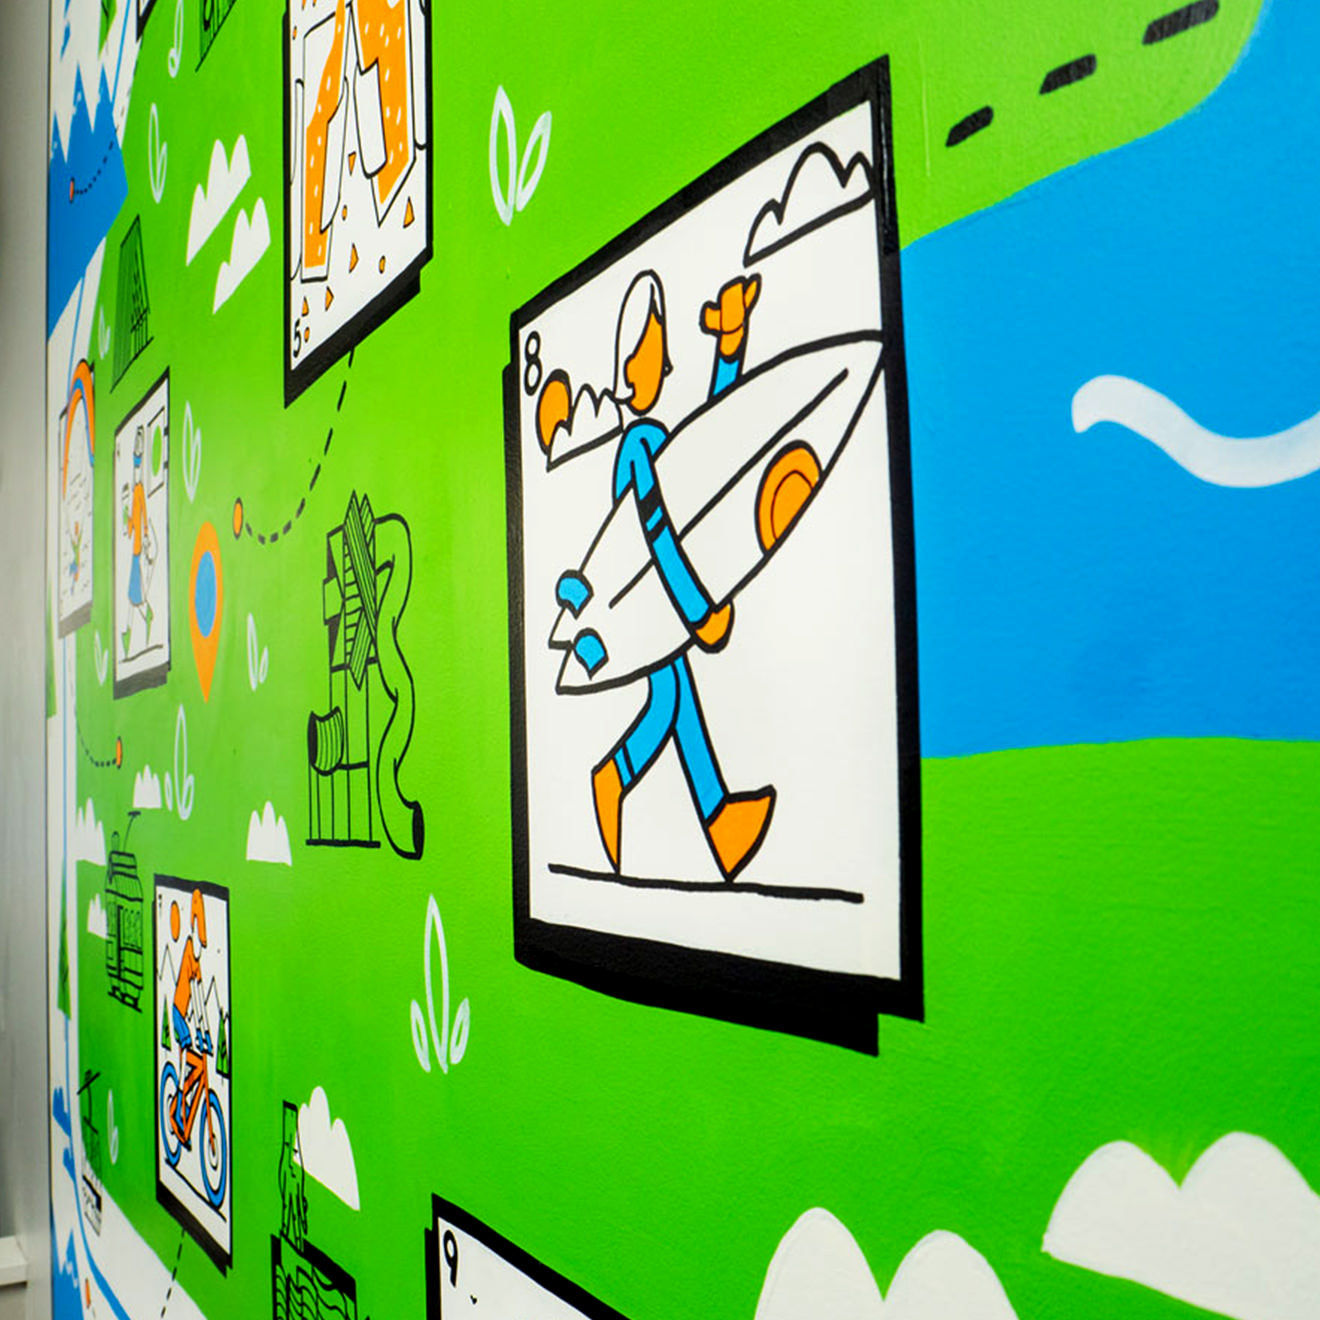 Close-up wall mural painting shows an illustrated surfer headed to the water